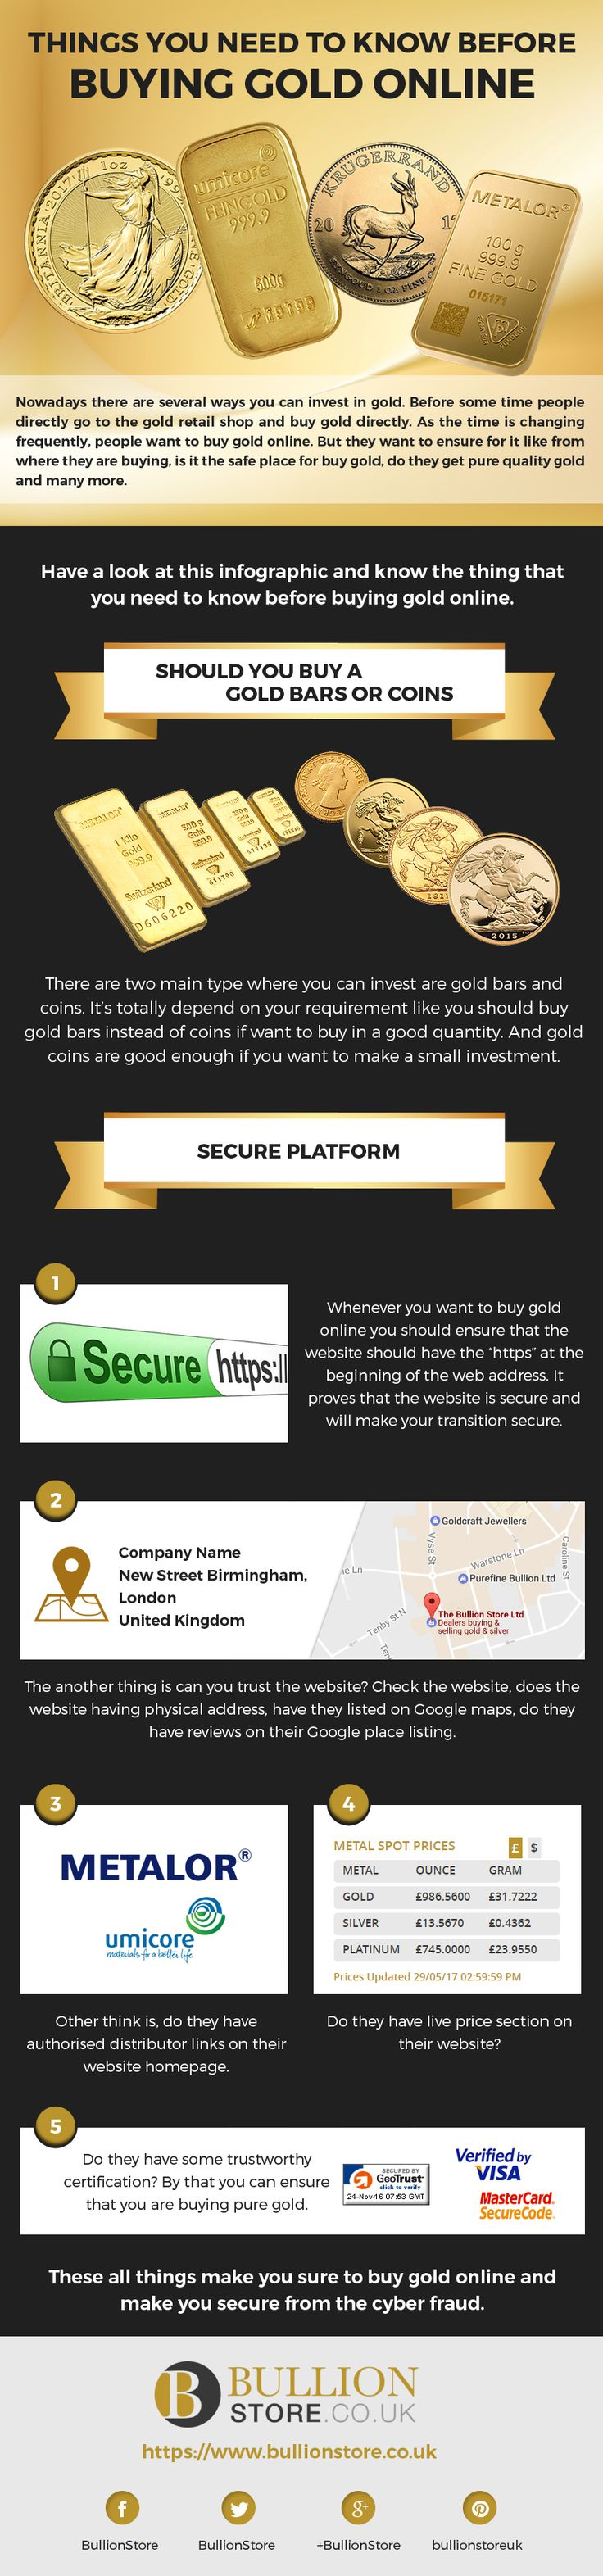 Things you need to know before buying gold online  Have a look at this infographic and know the thing that you need to know before Buy Gold Online.